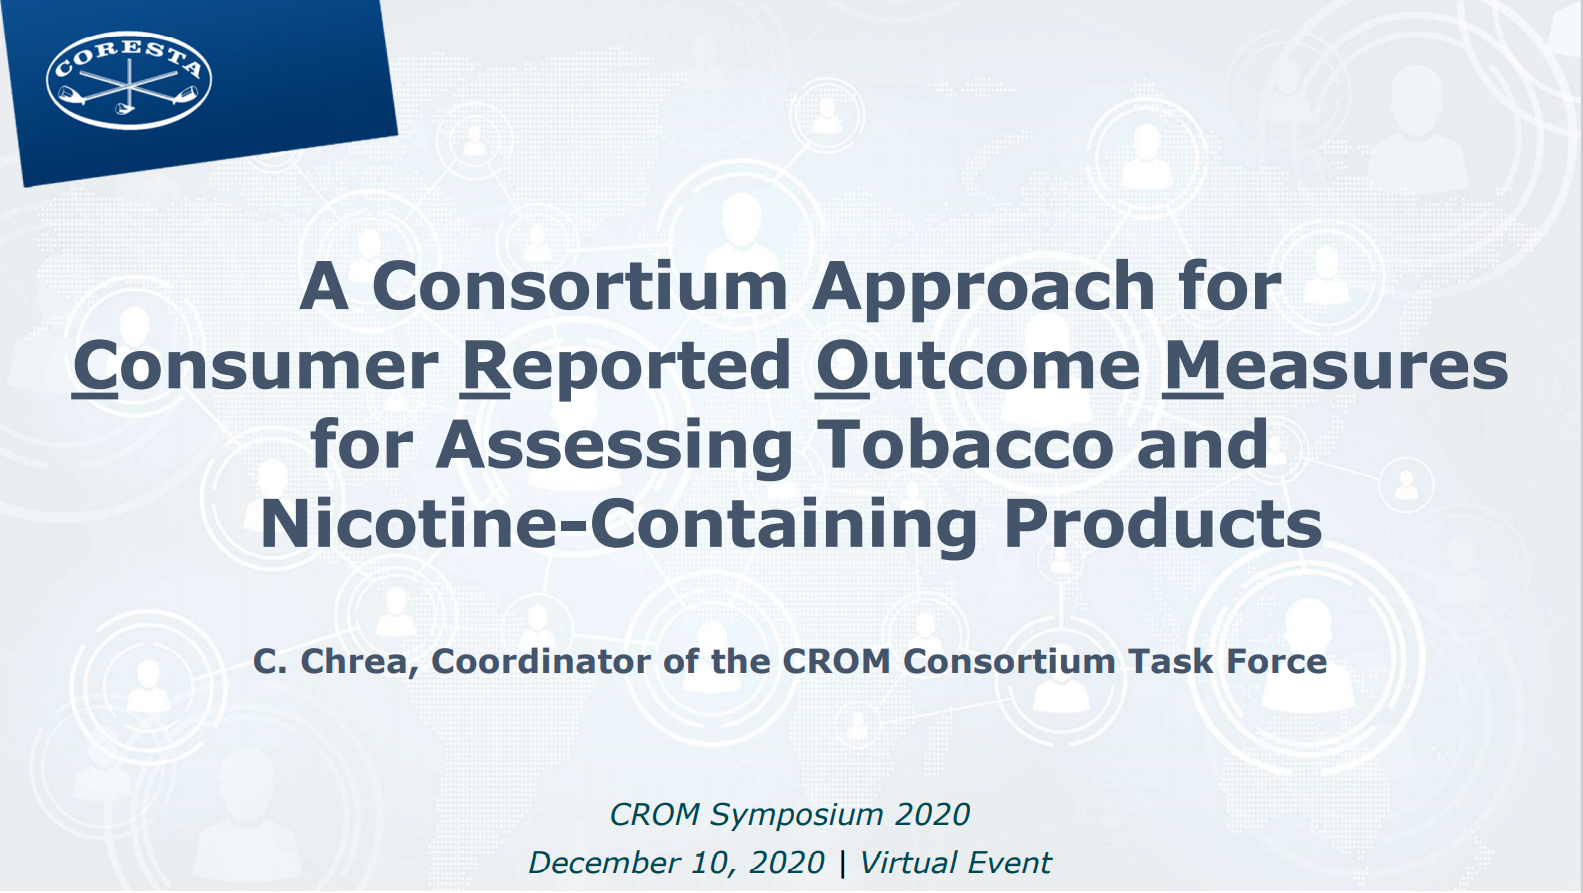 A Consortium Approach for Consumer Reported Outcome Measures for Assesing Tobacco and Nicotine Containing Products